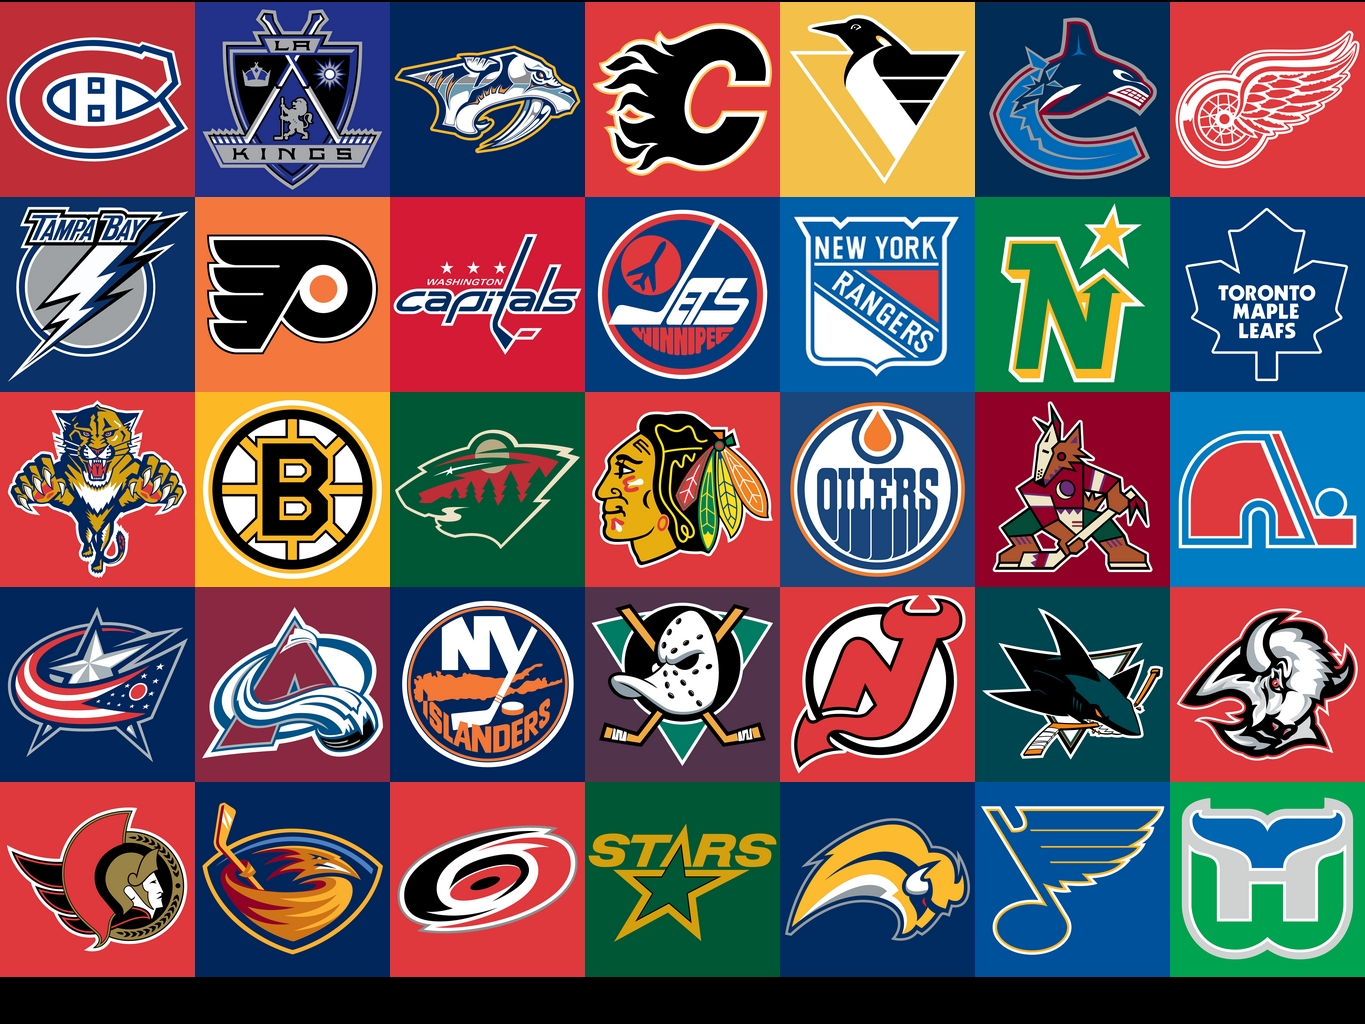 https://2.bp.blogspot.com/_1KiCOLVSWwE/TU66gsahgwI/AAAAAAAAA2E/Q2lSIY_EoDQ/s1600/NHL_Background_Logos.jpg